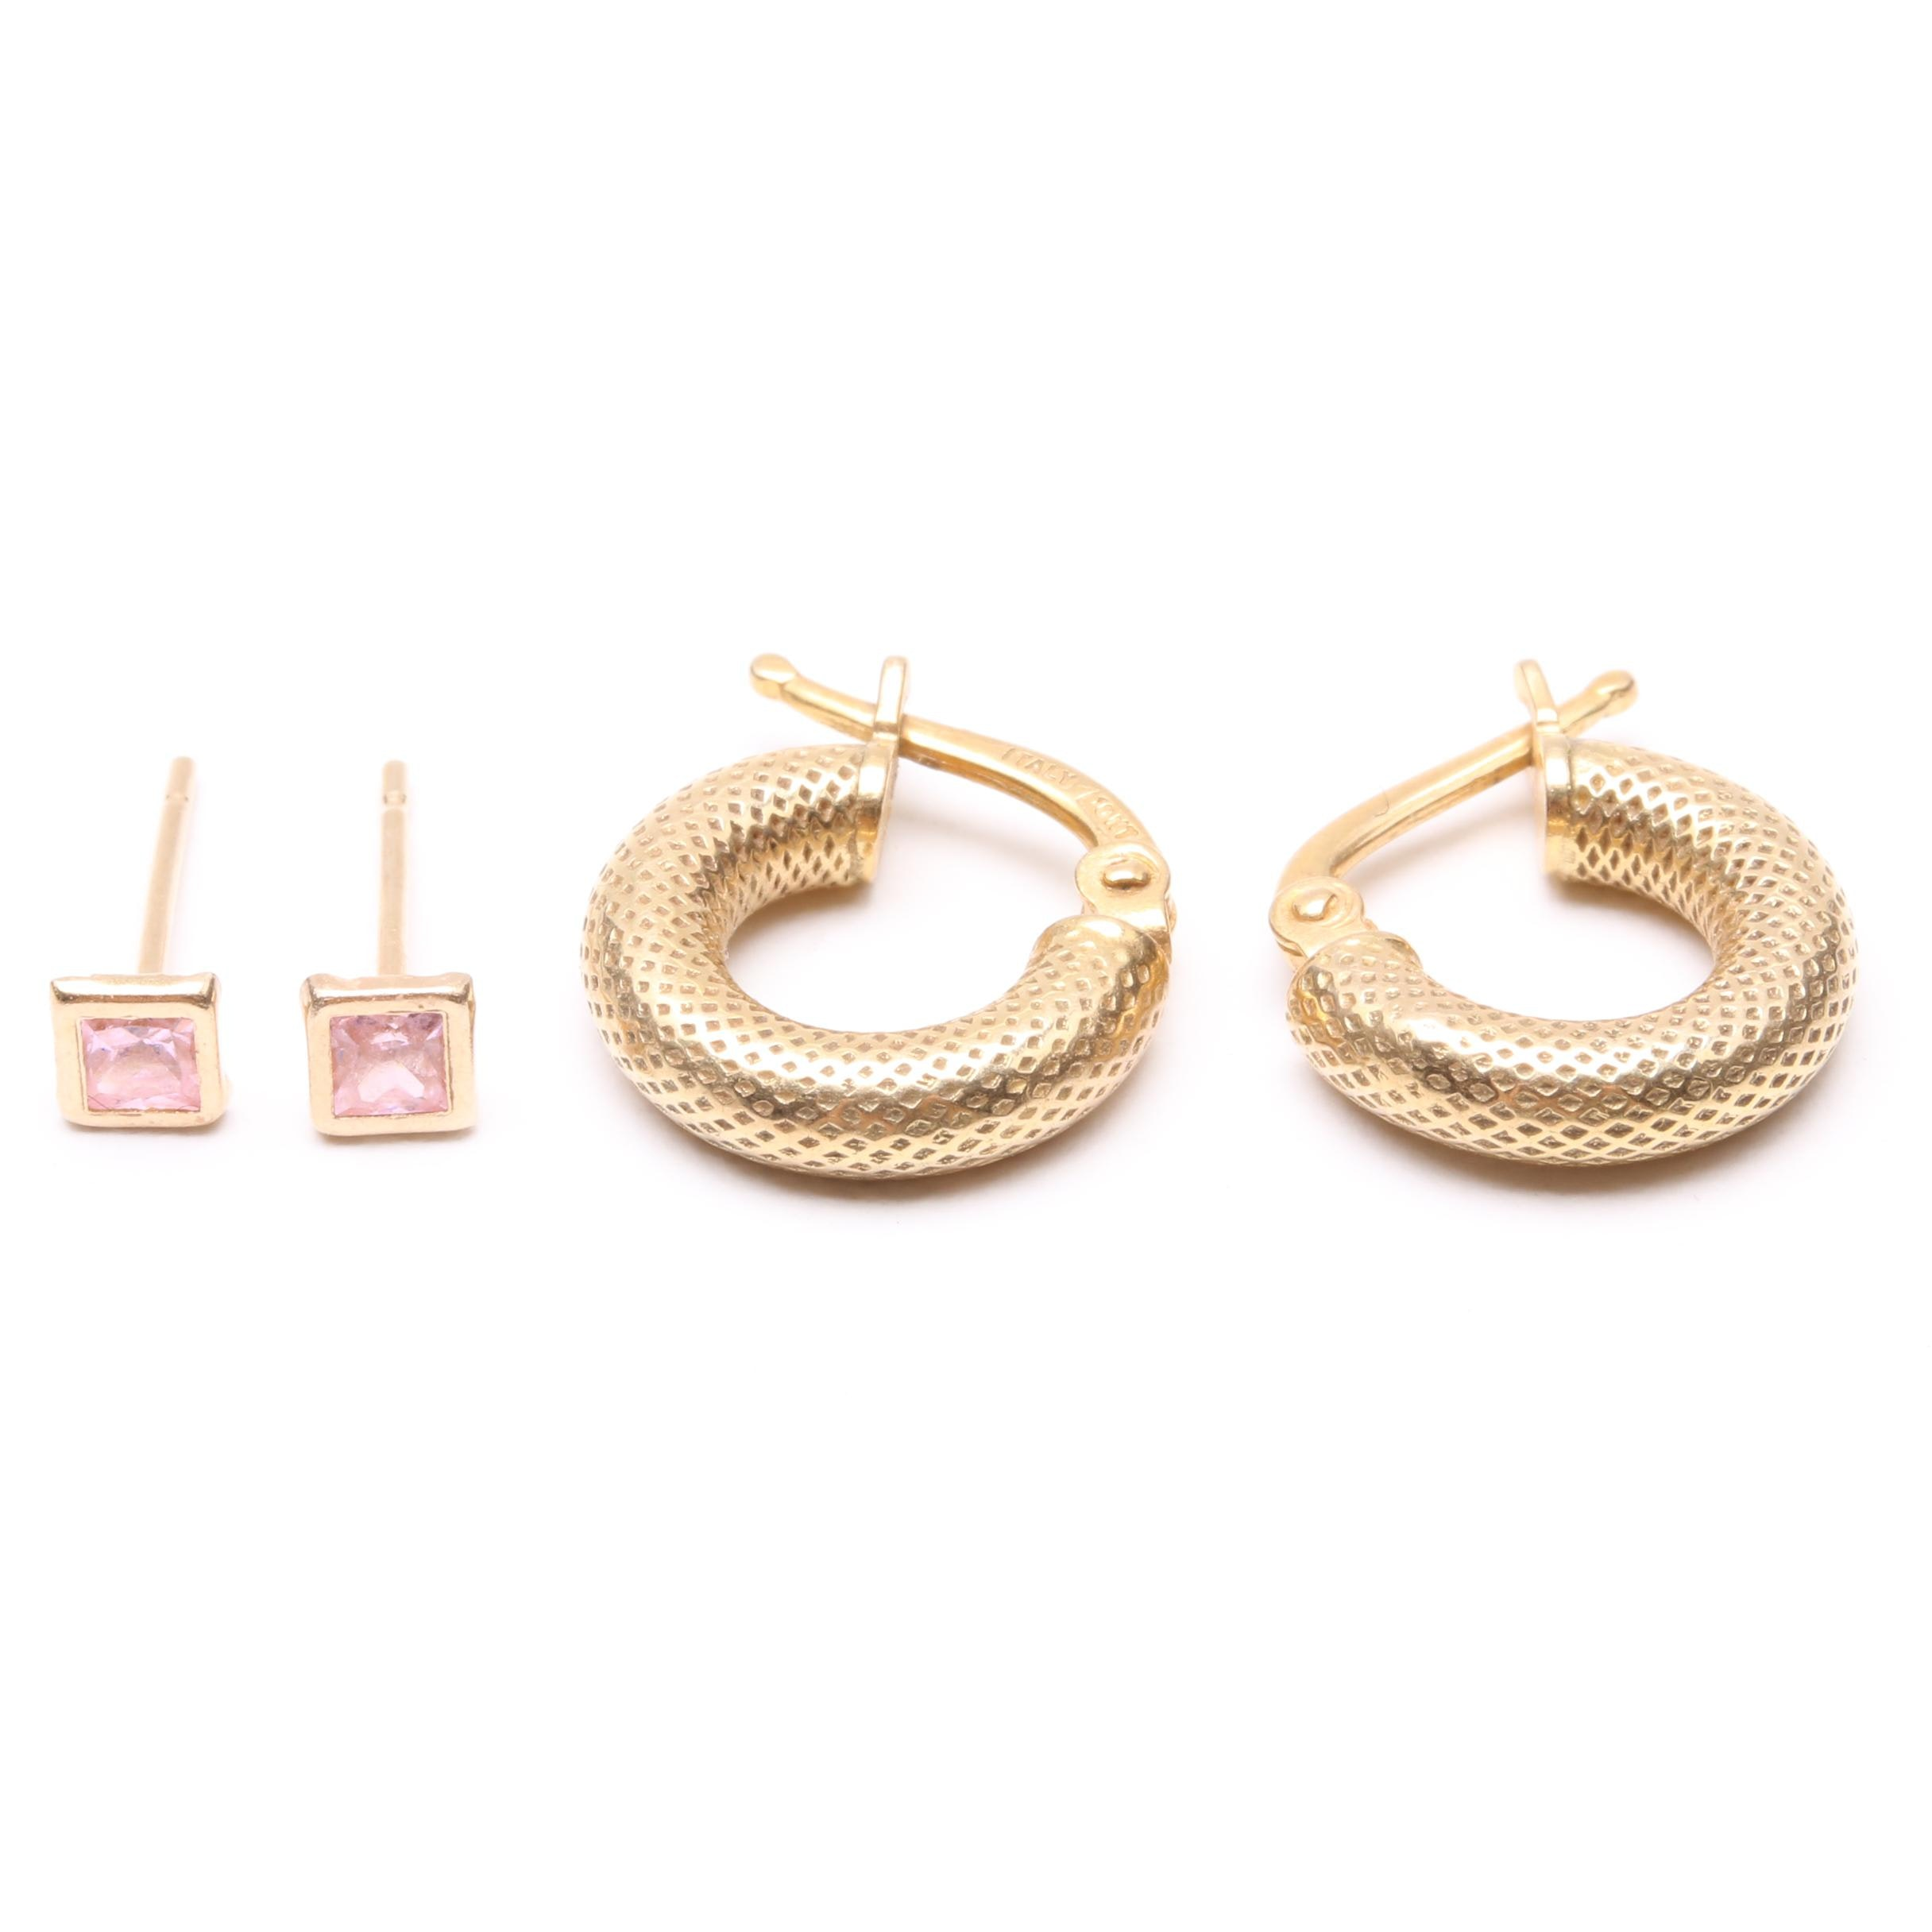 10K Yellow Gold Textured Hoops and 14K Pink Tourmaline Stud Earrings